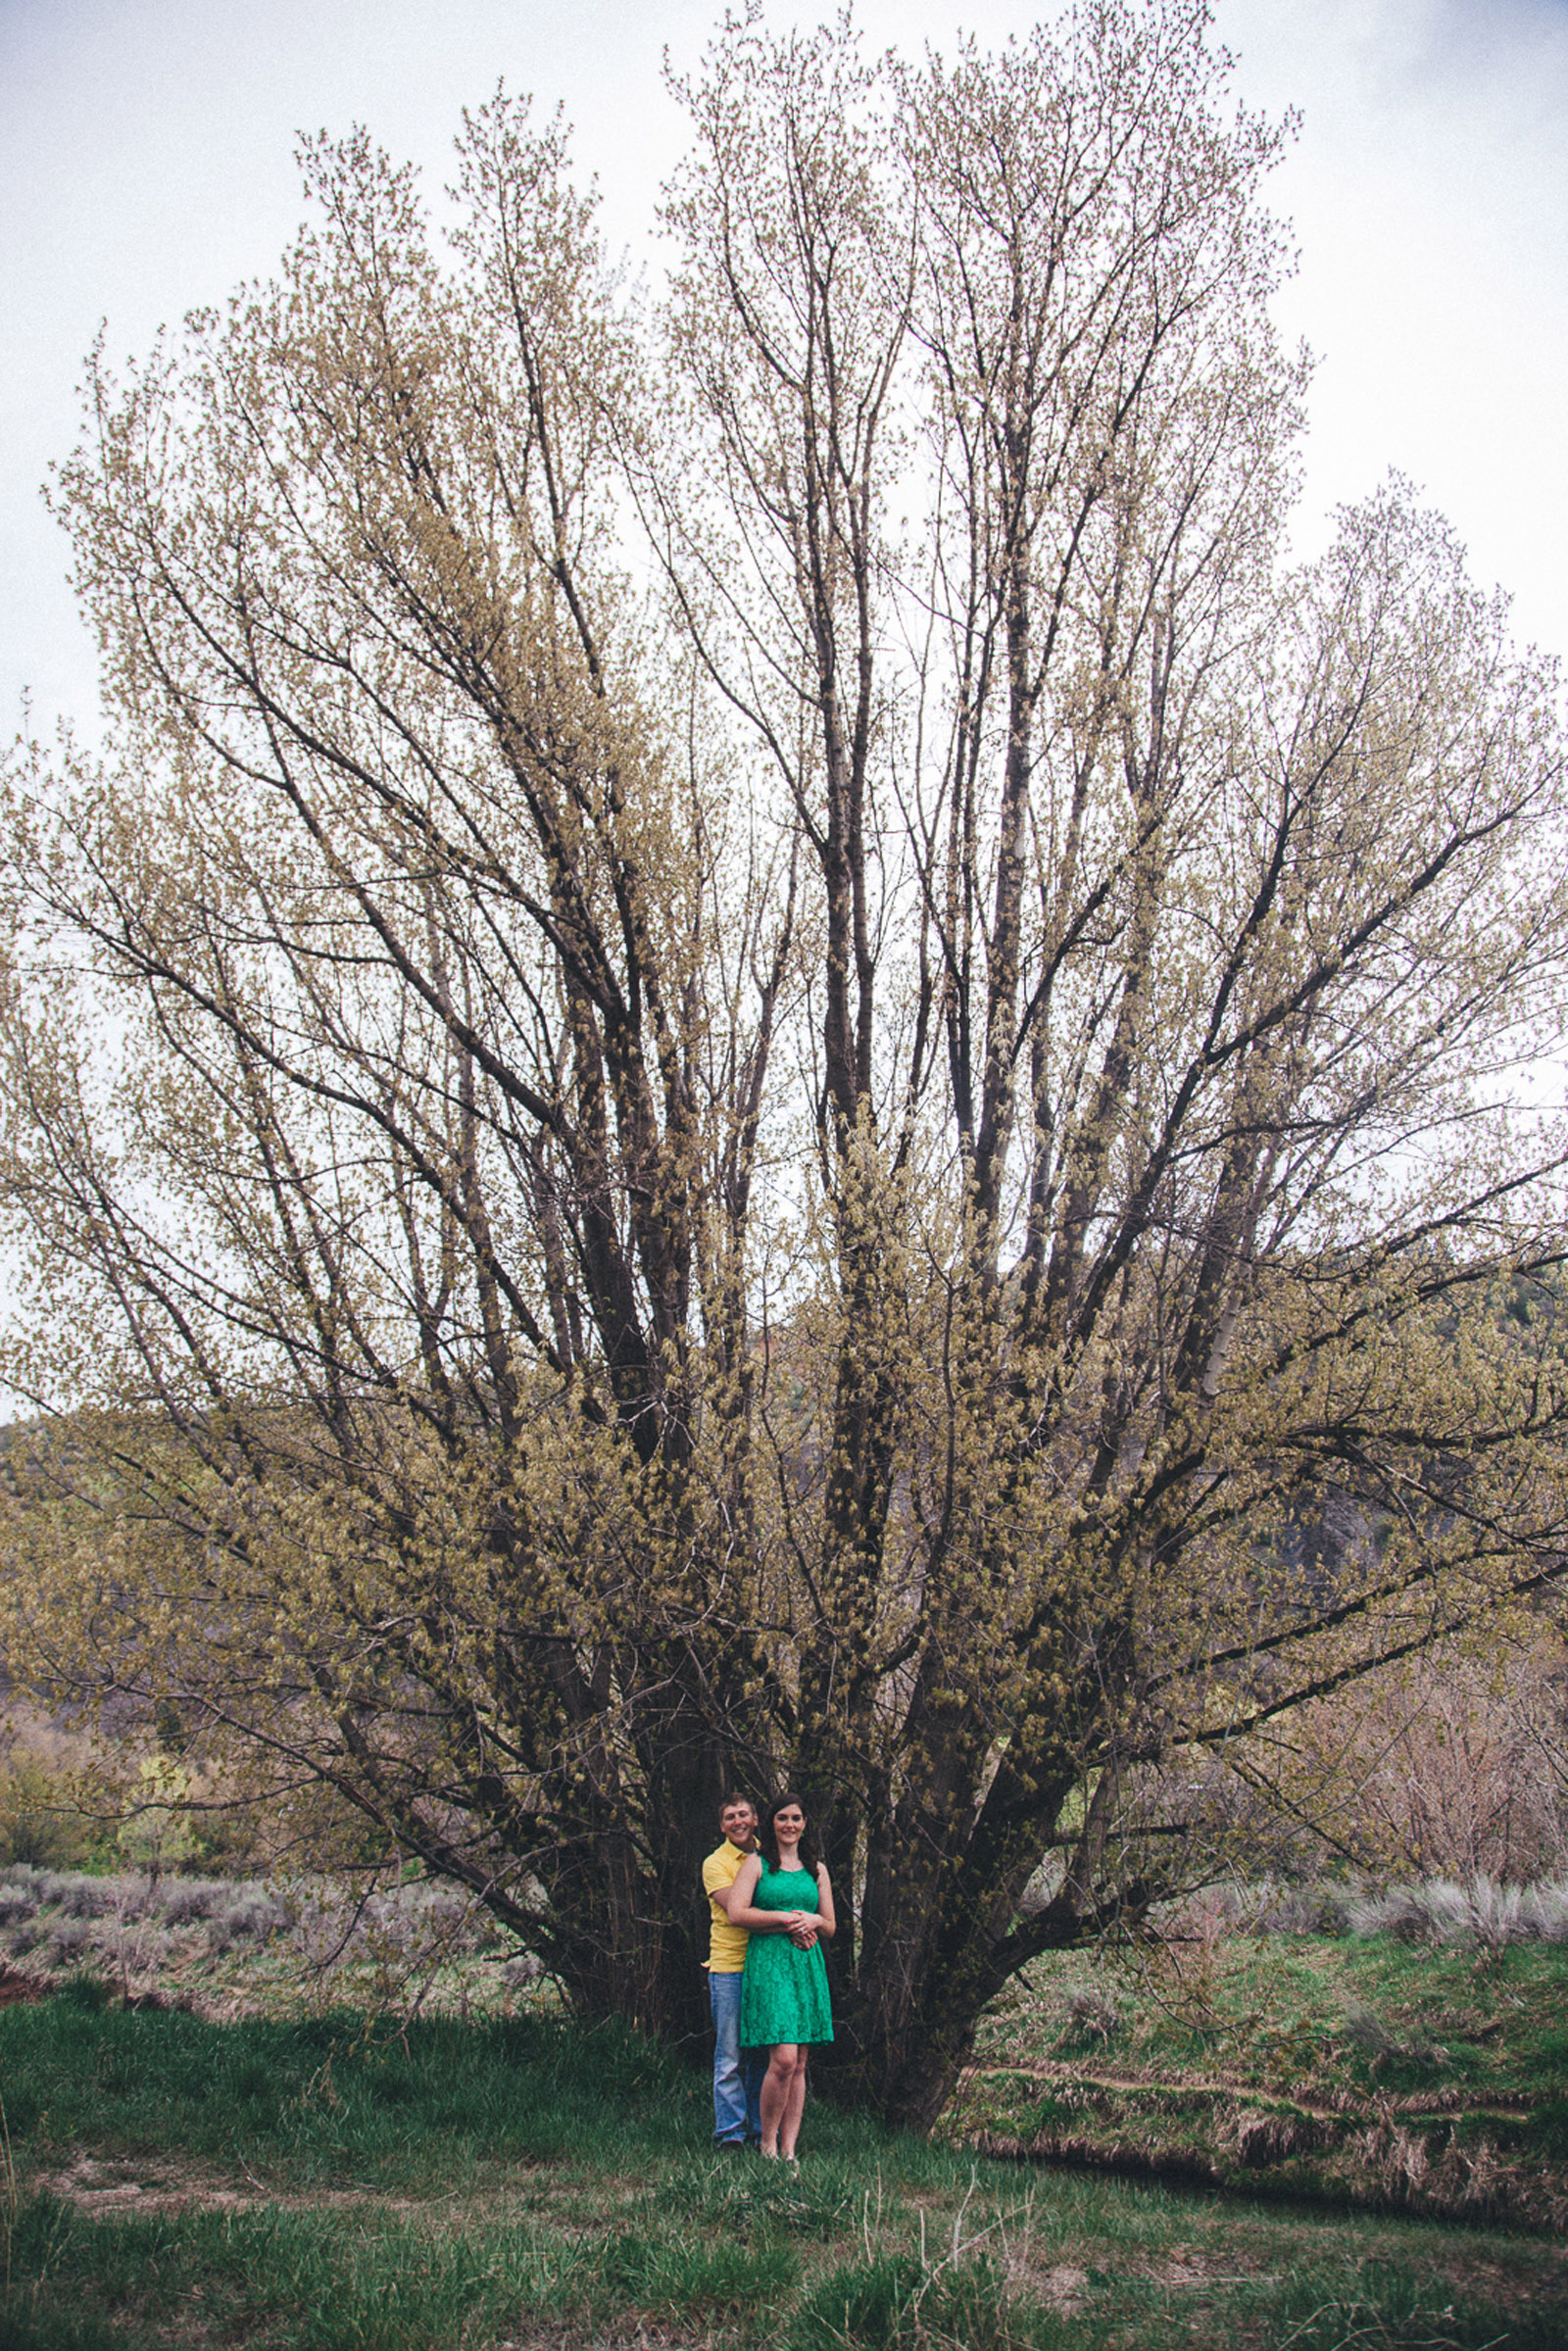 032-engagement-trees-fun-wedding-train-laughing-durango-colorado-farmington-candid